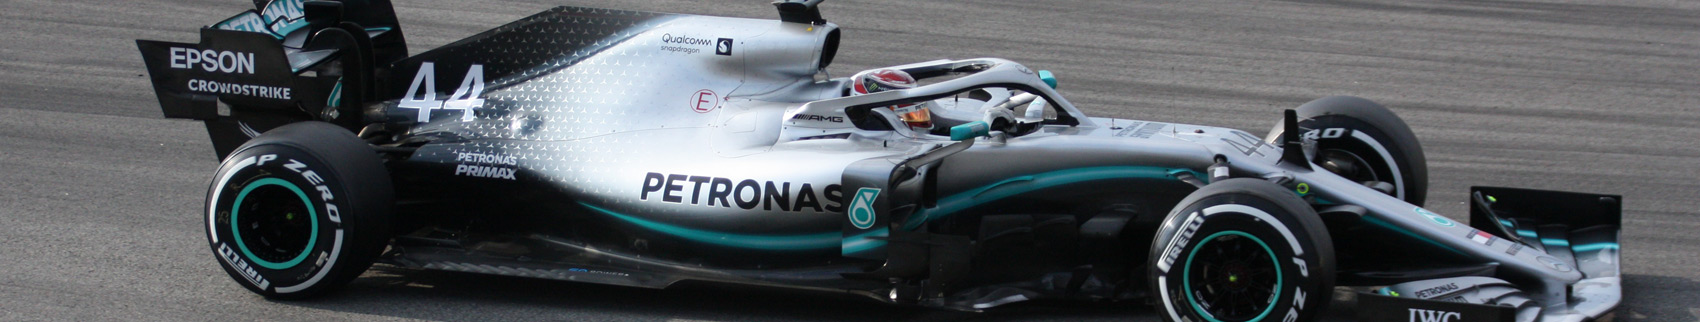 Mercedes china f1 brembo